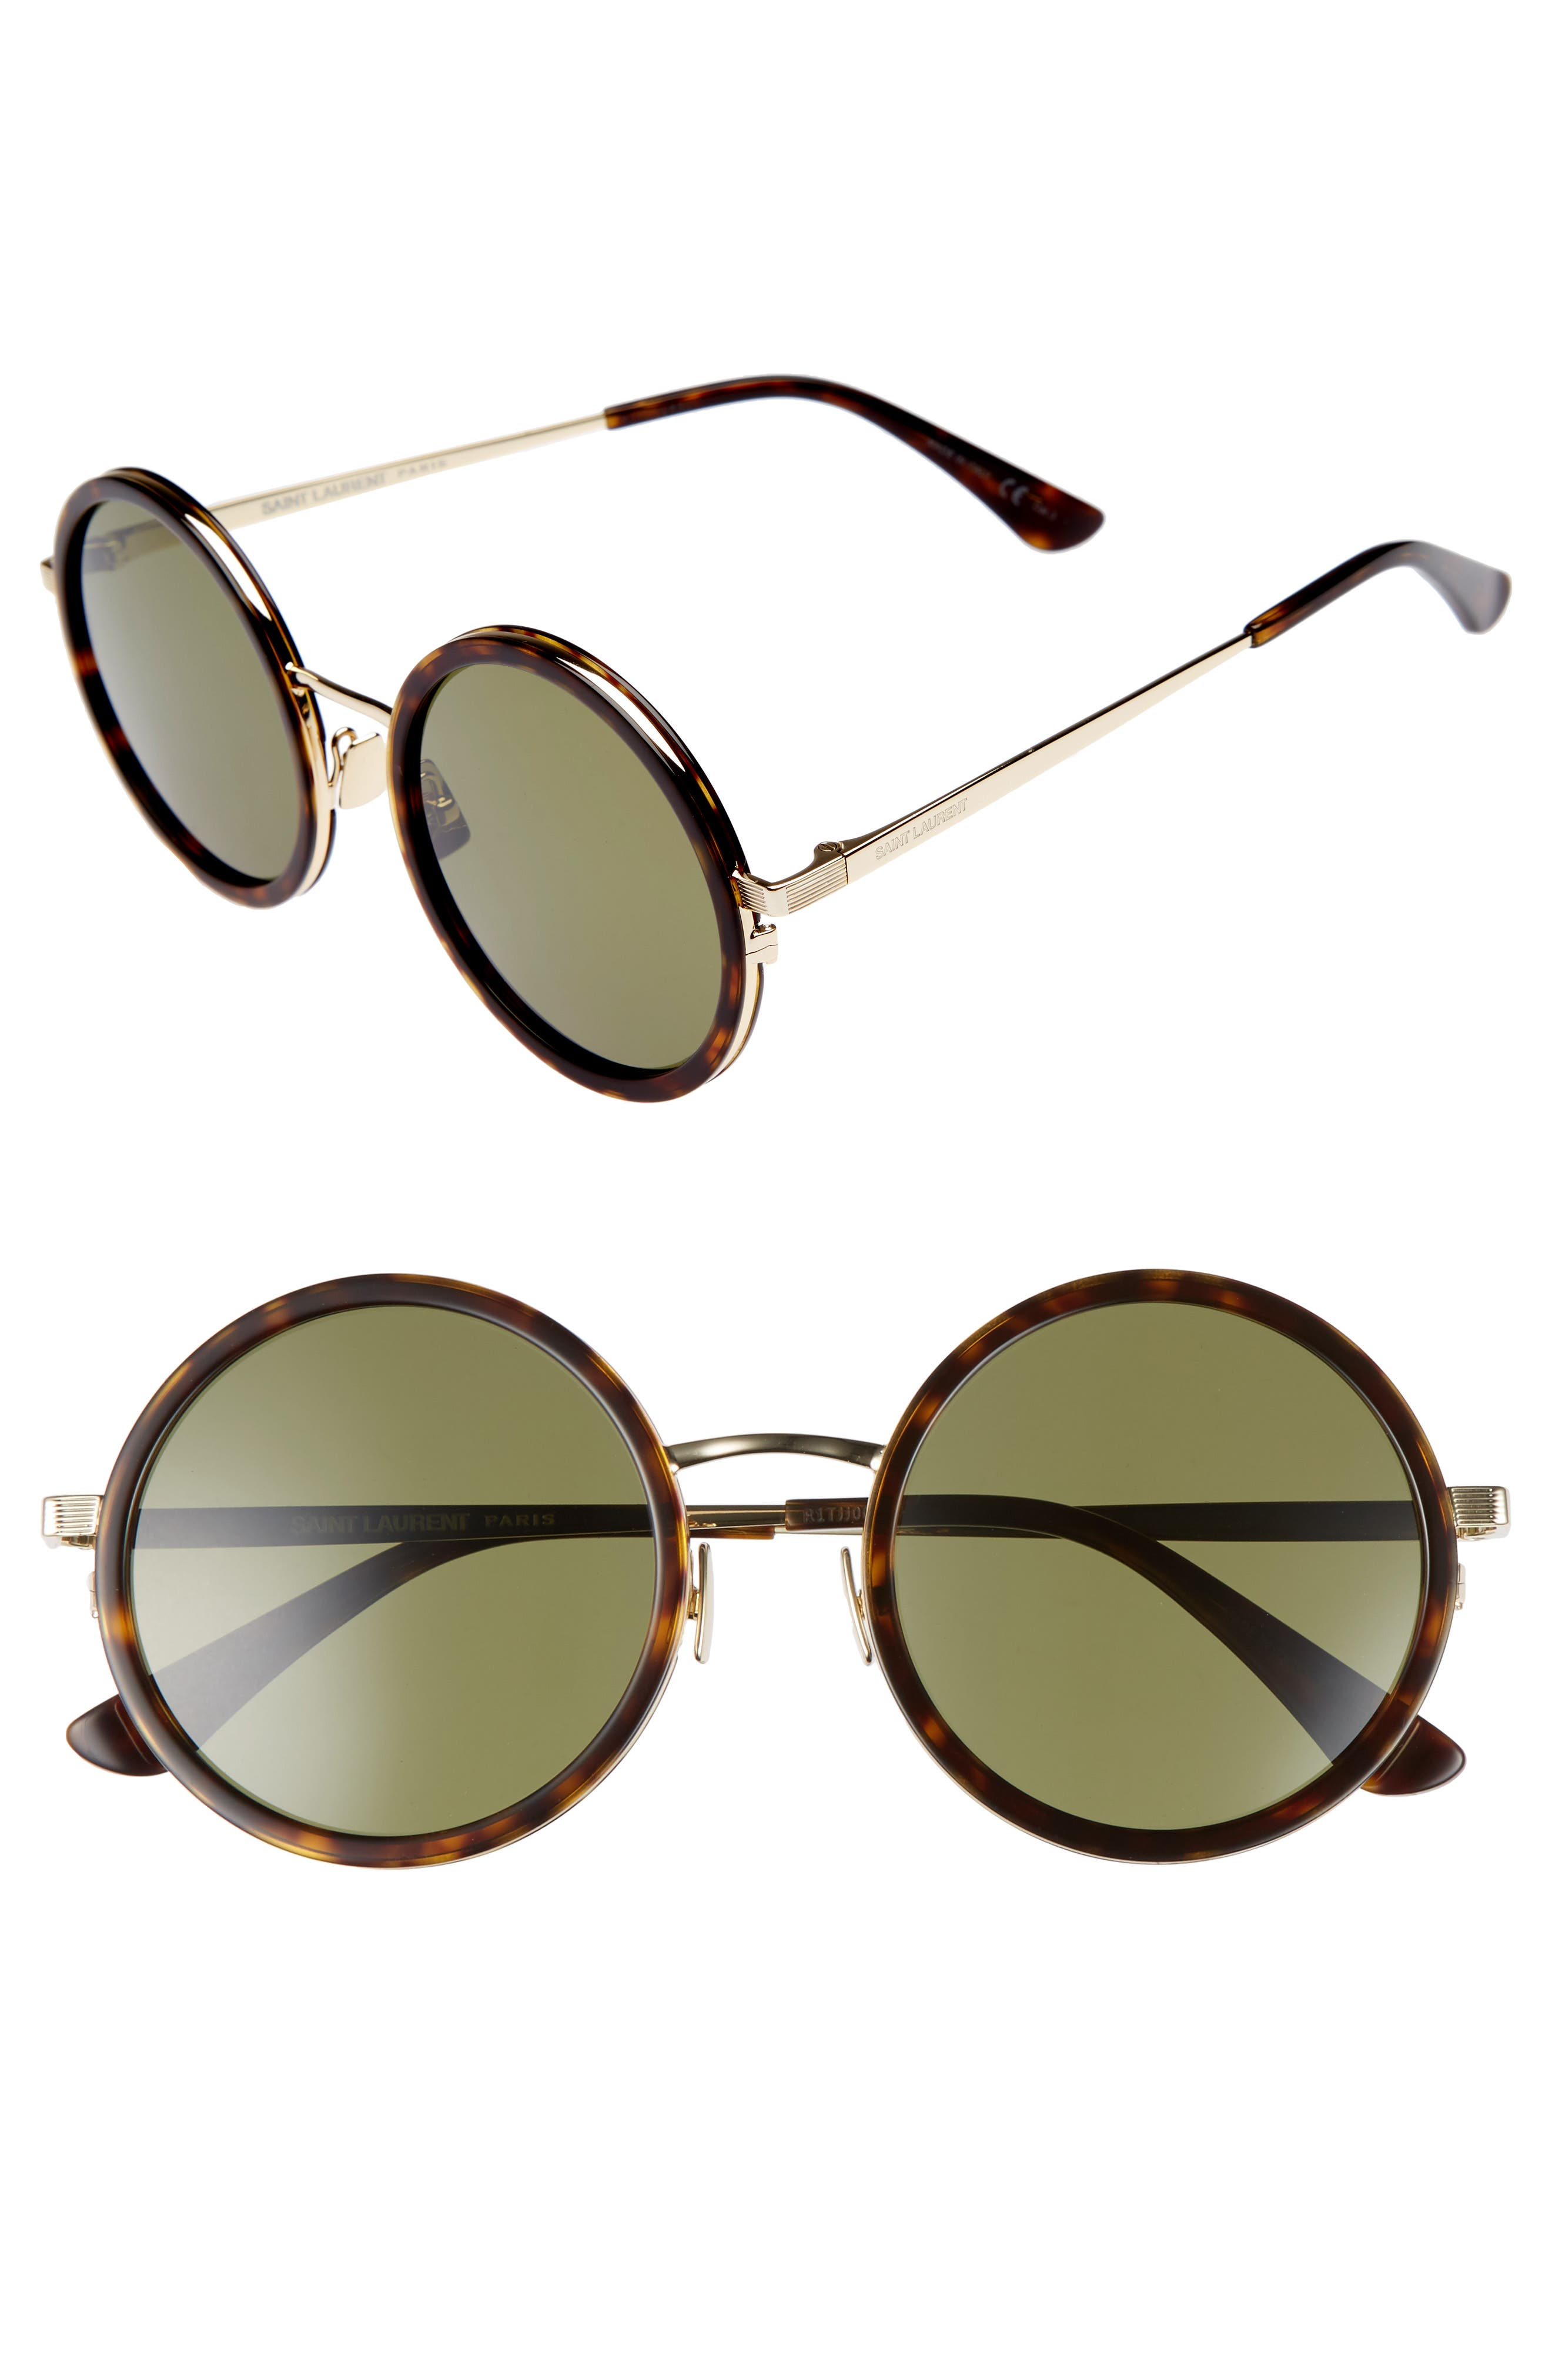 52mm Round Sunglasses,                         Main,                         color, Havana